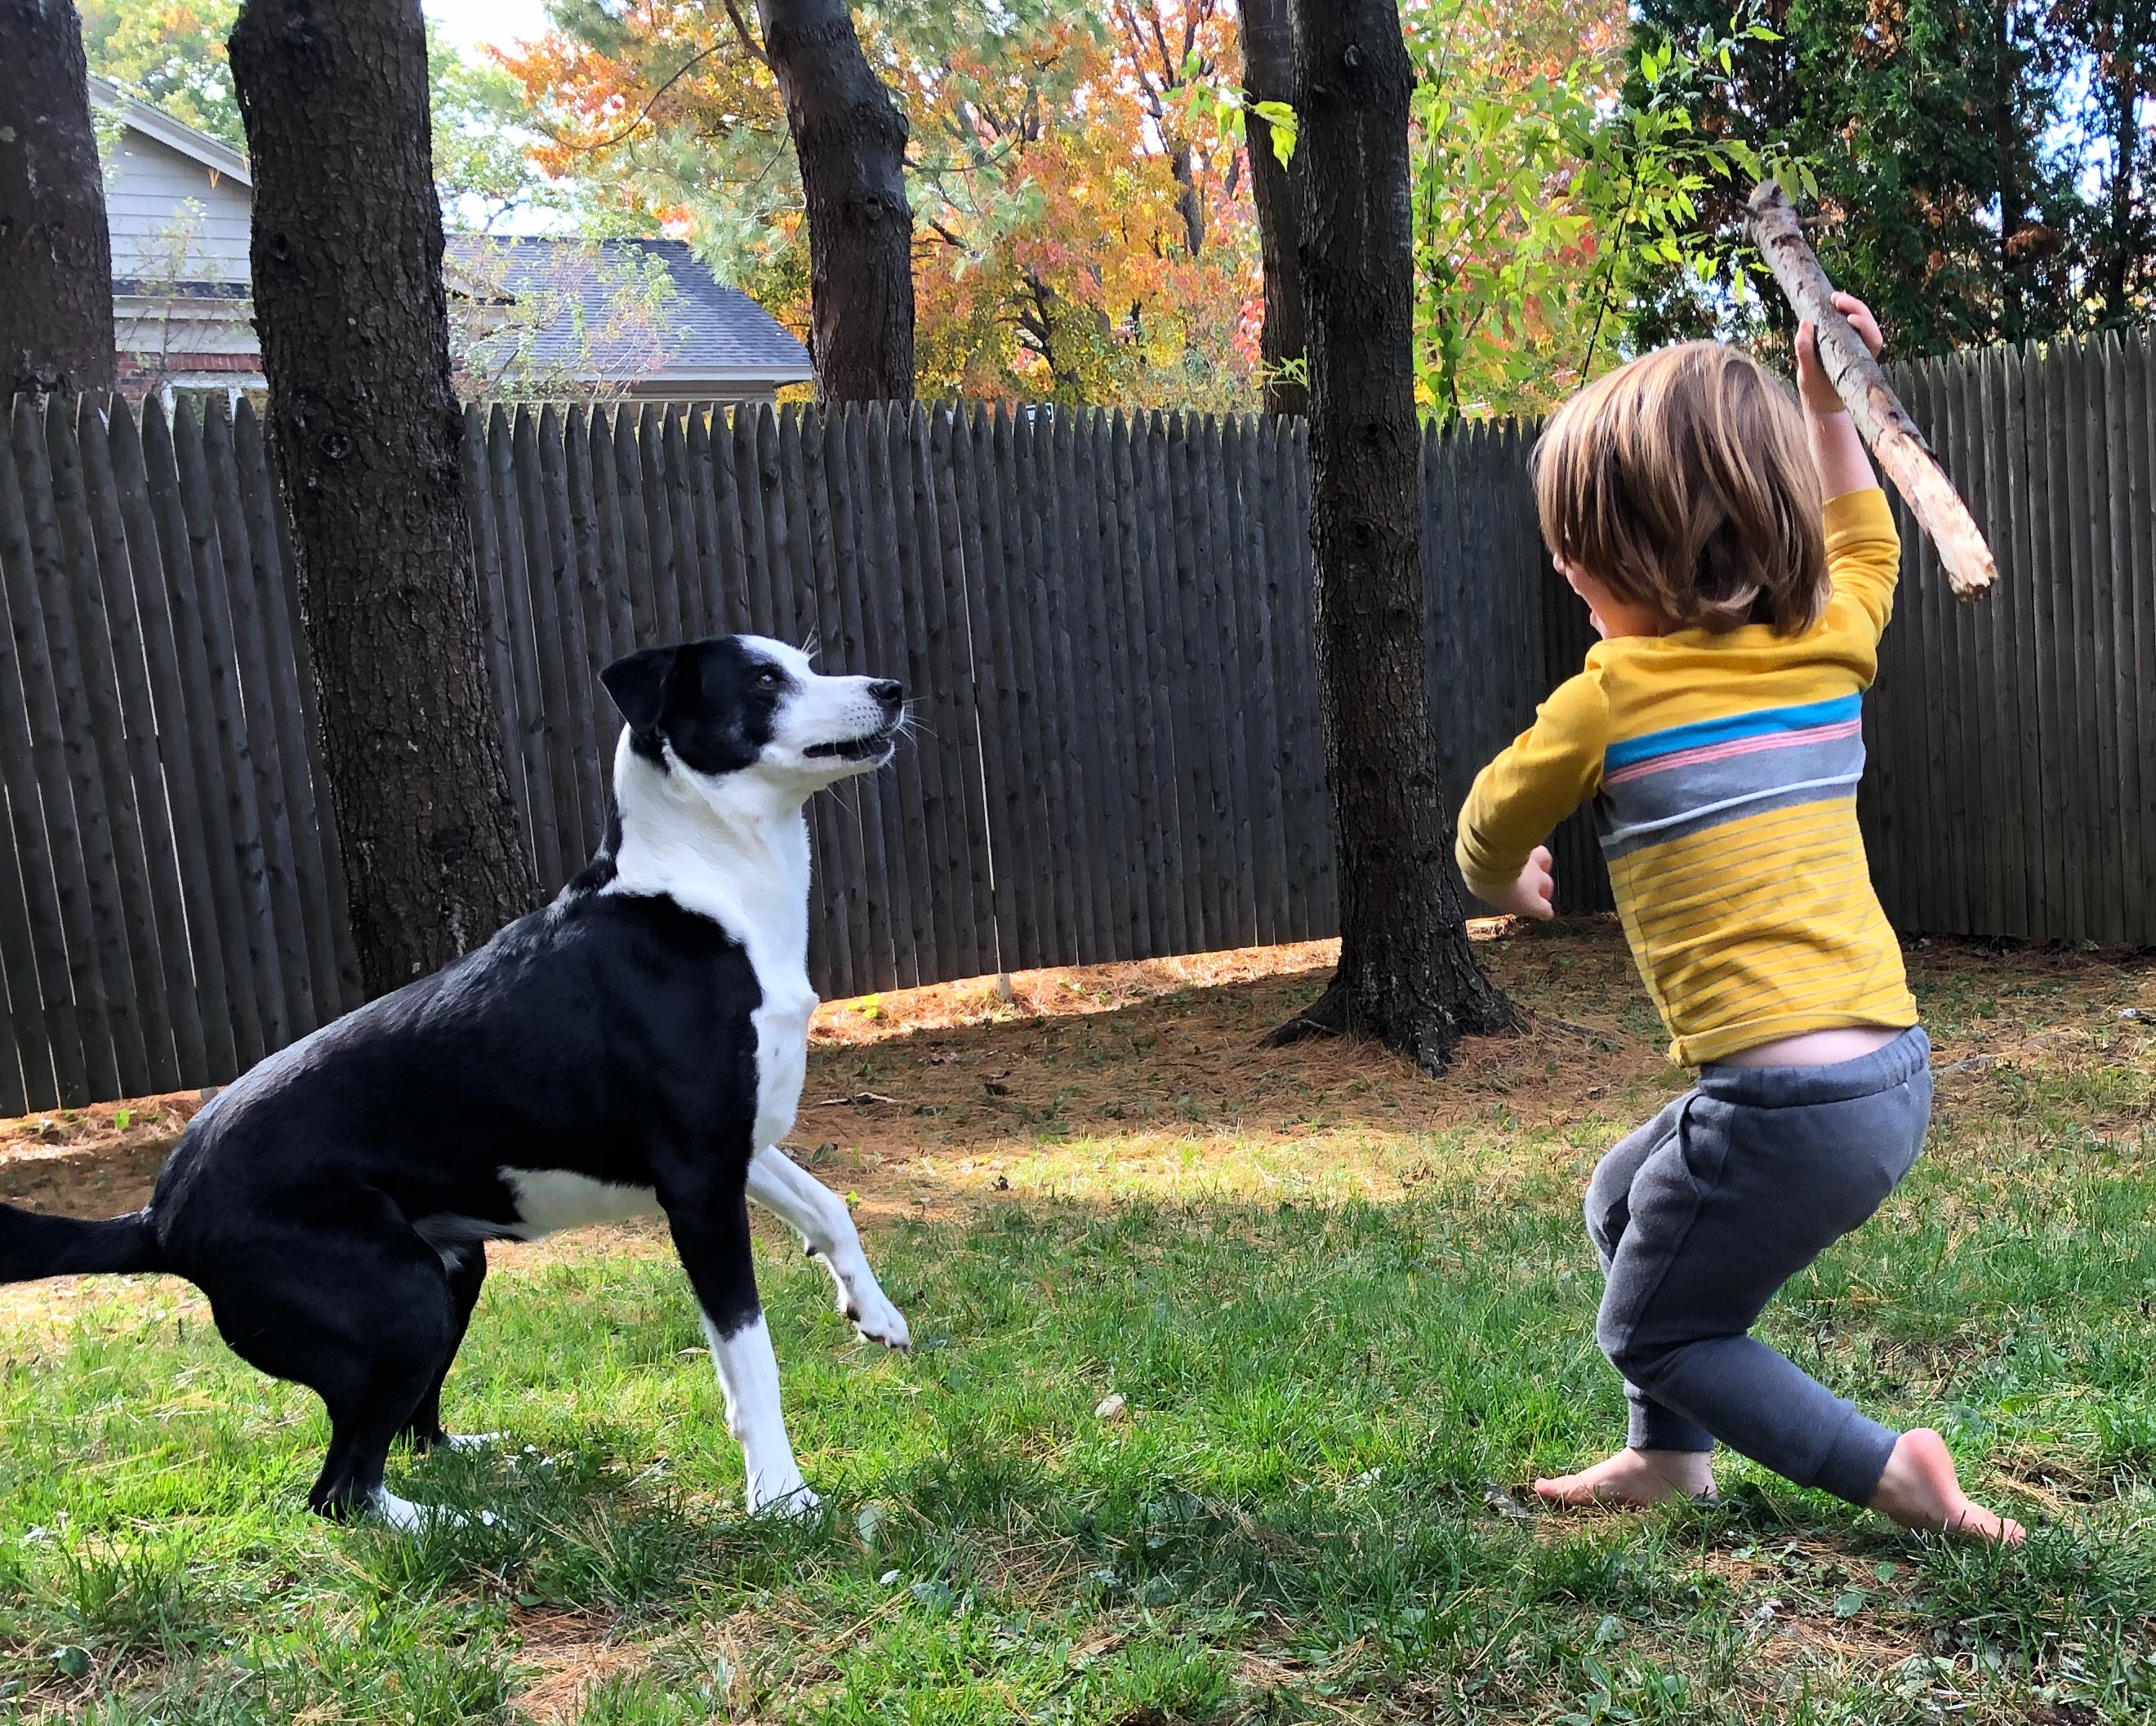 A child throws a stick for a dog.